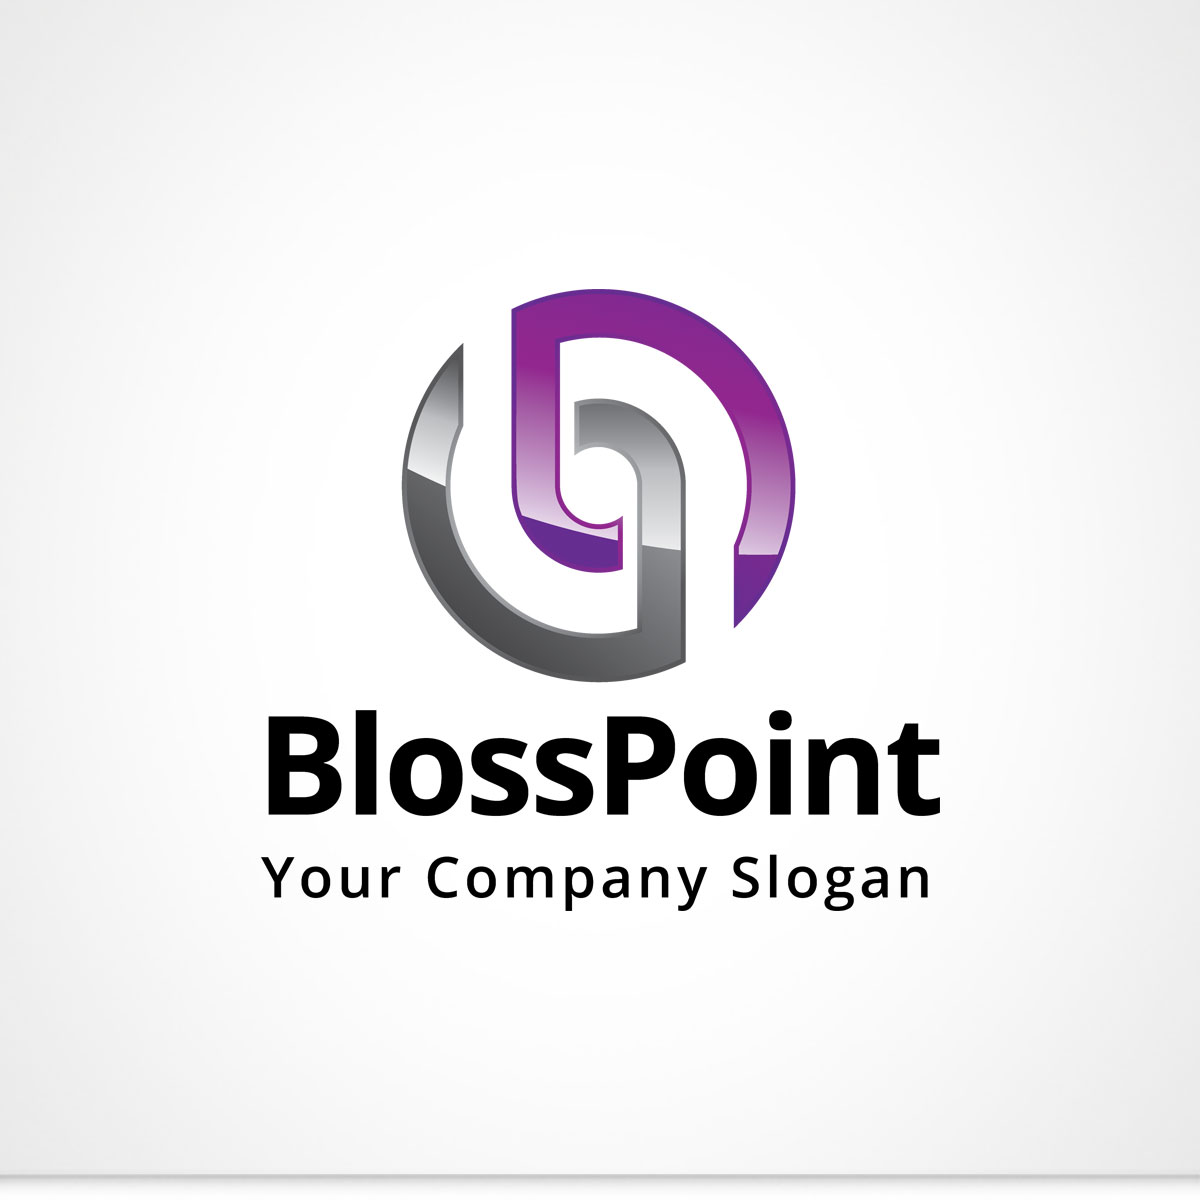 I will design an unique and professional logo for your company.